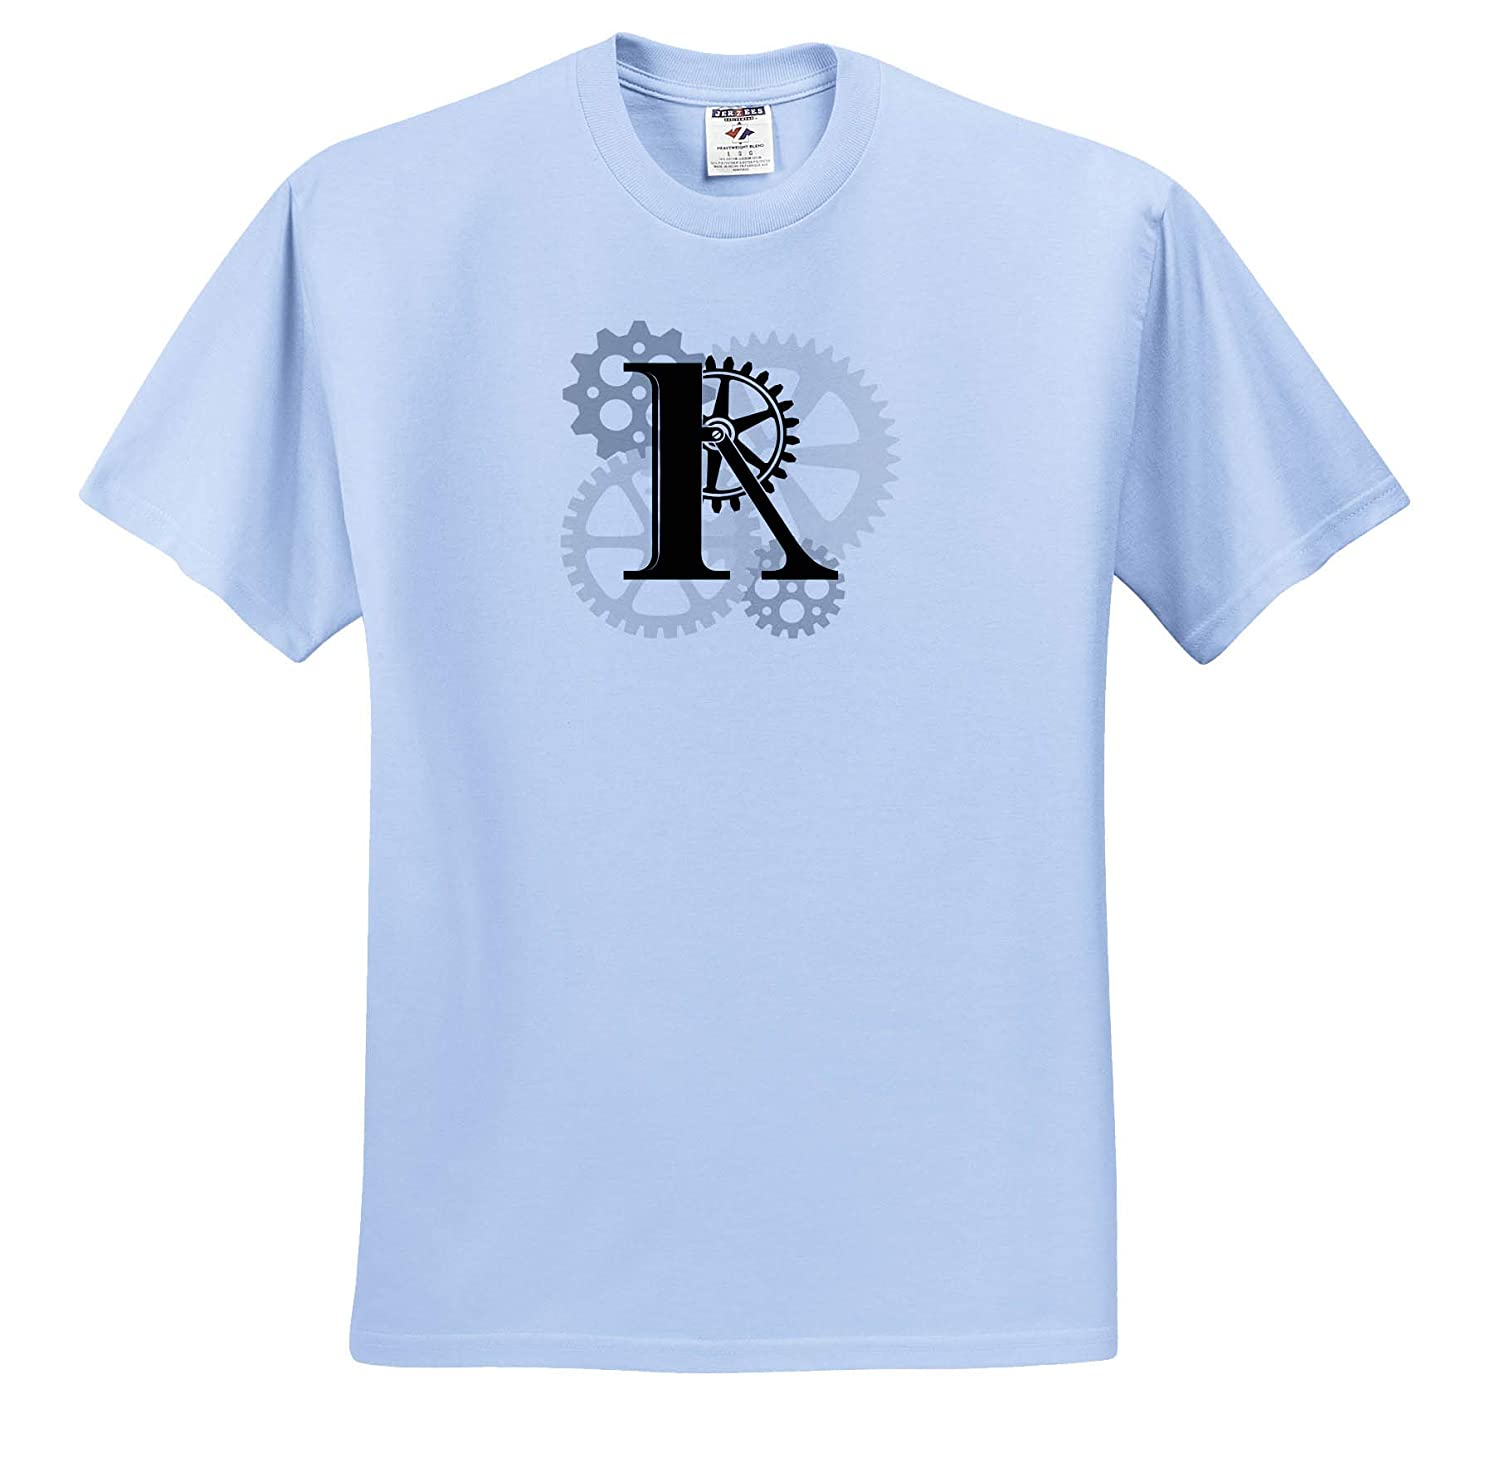 Awesome Black Letter R T-Shirts Grey cogs Mechanics Machinery Monogram Mechanics Gears 3dRose Alexis Design